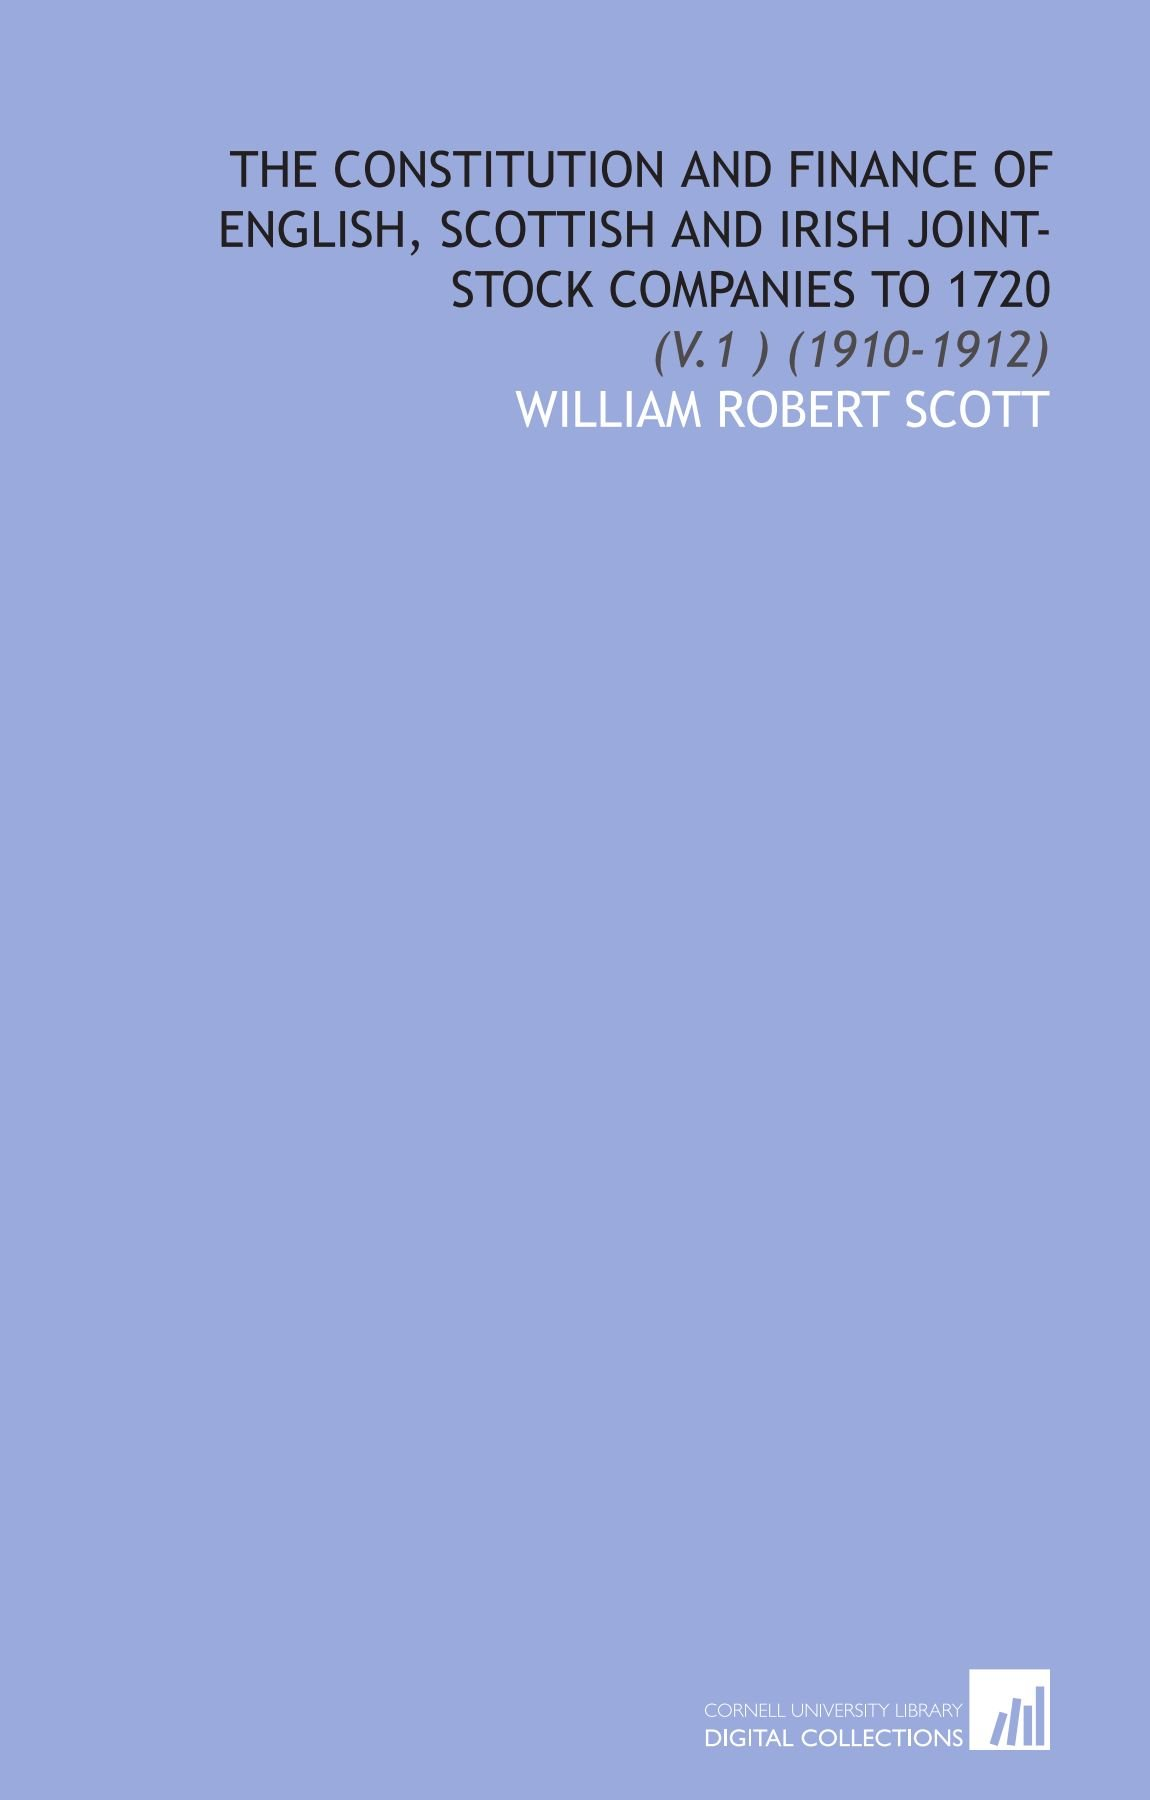 Download The Constitution and Finance of English, Scottish and Irish Joint-Stock Companies to 1720: (V.1 ) (1910-1912) pdf epub